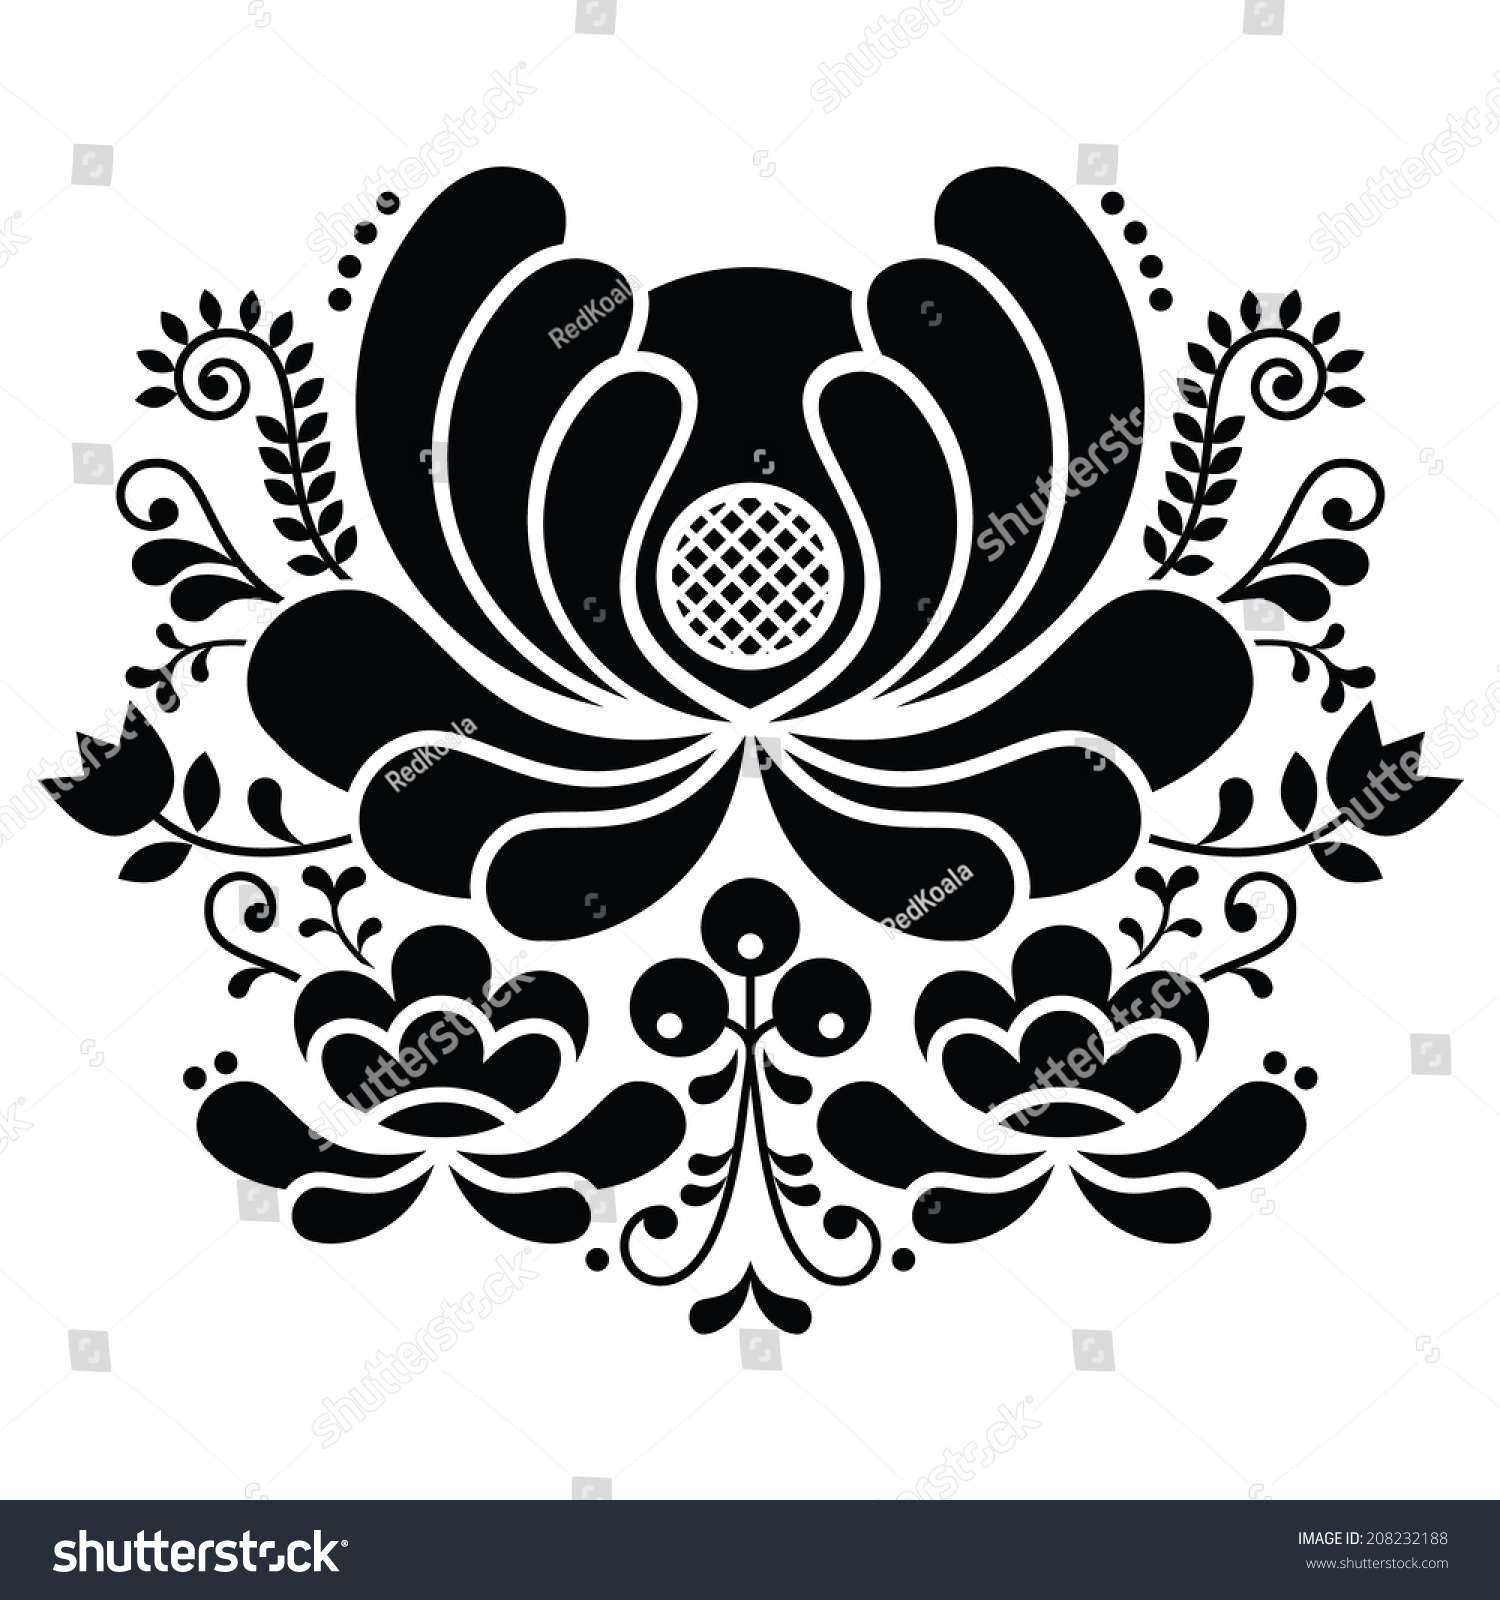 Norwegian folk art black and white pattern rosemaling